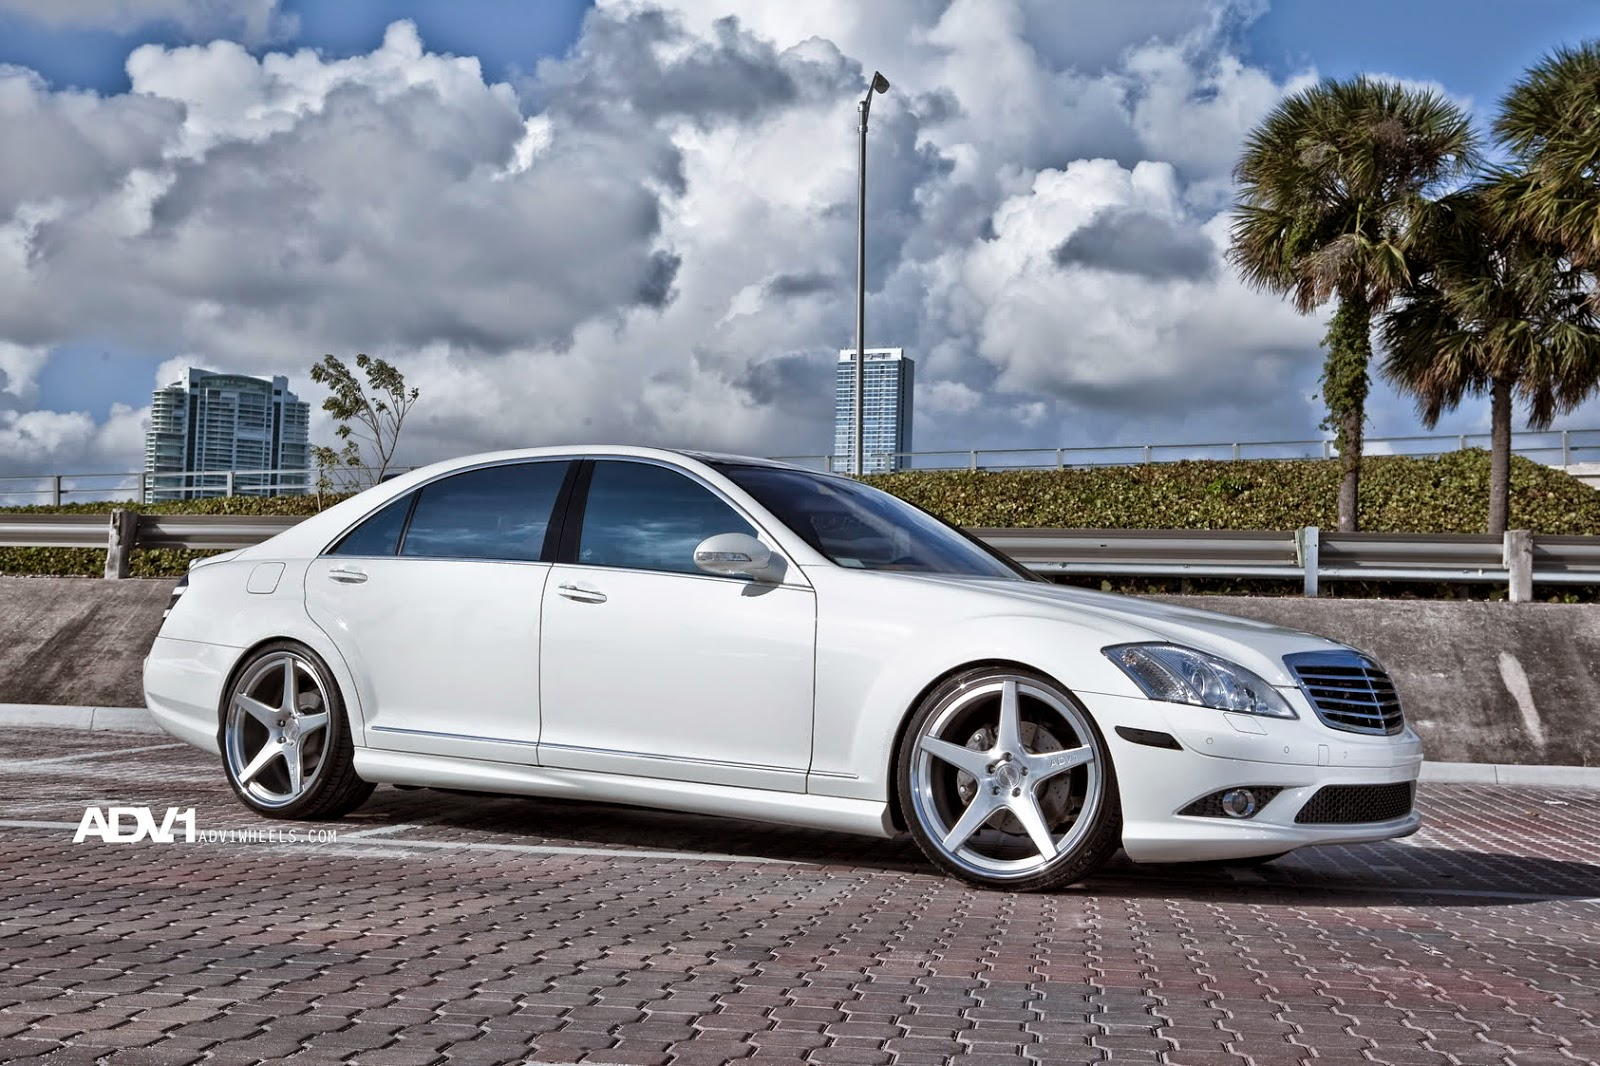 Mercedes benz w221 s550 on adv 1 wheels benztuning for Mercedes benz wheels rims